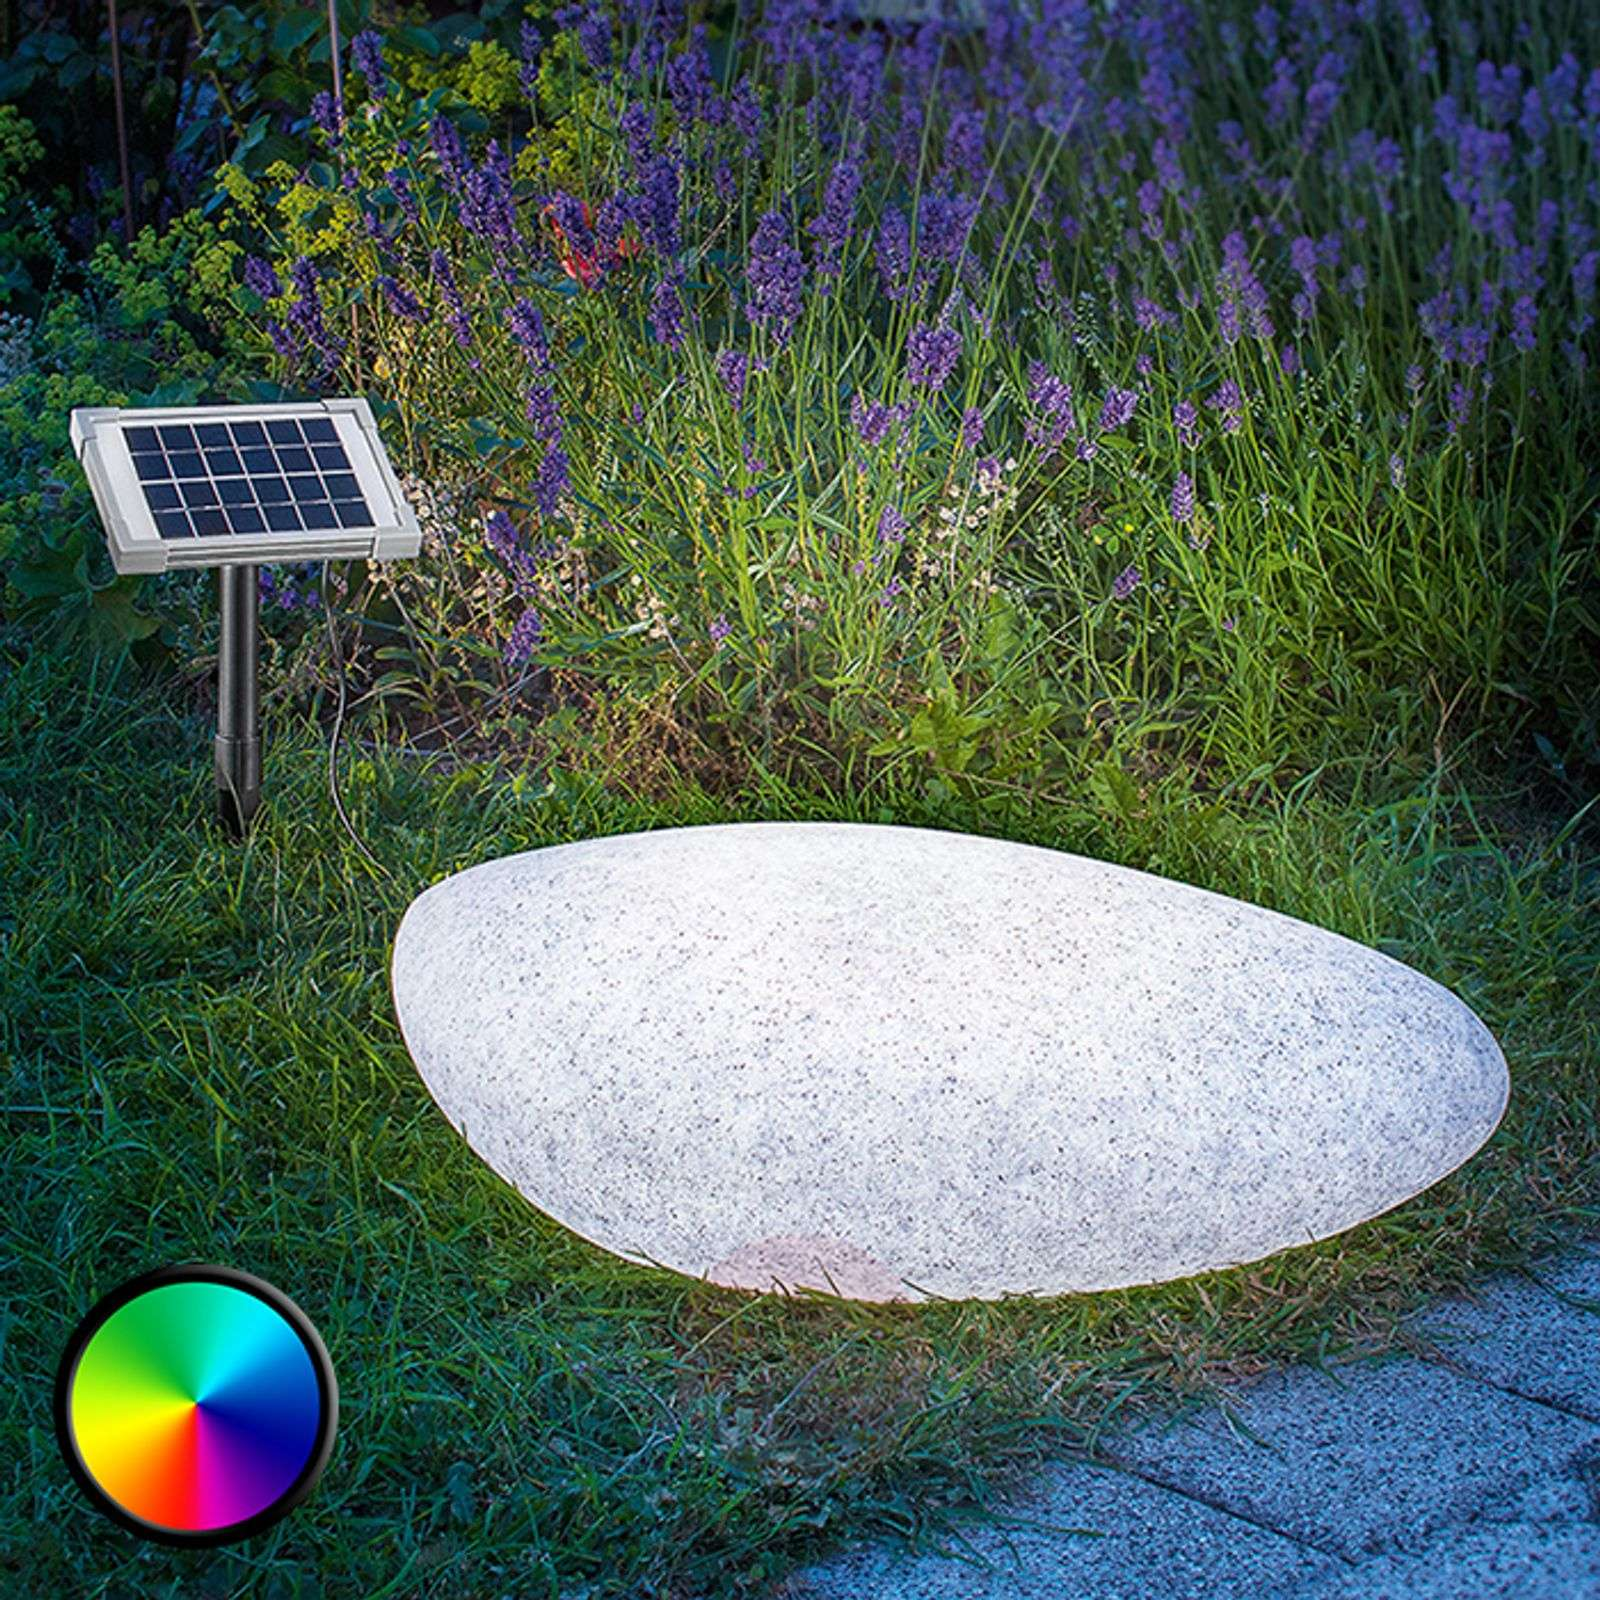 Outdoor decorative light solar LED Stone 40 | Lights.co.uk